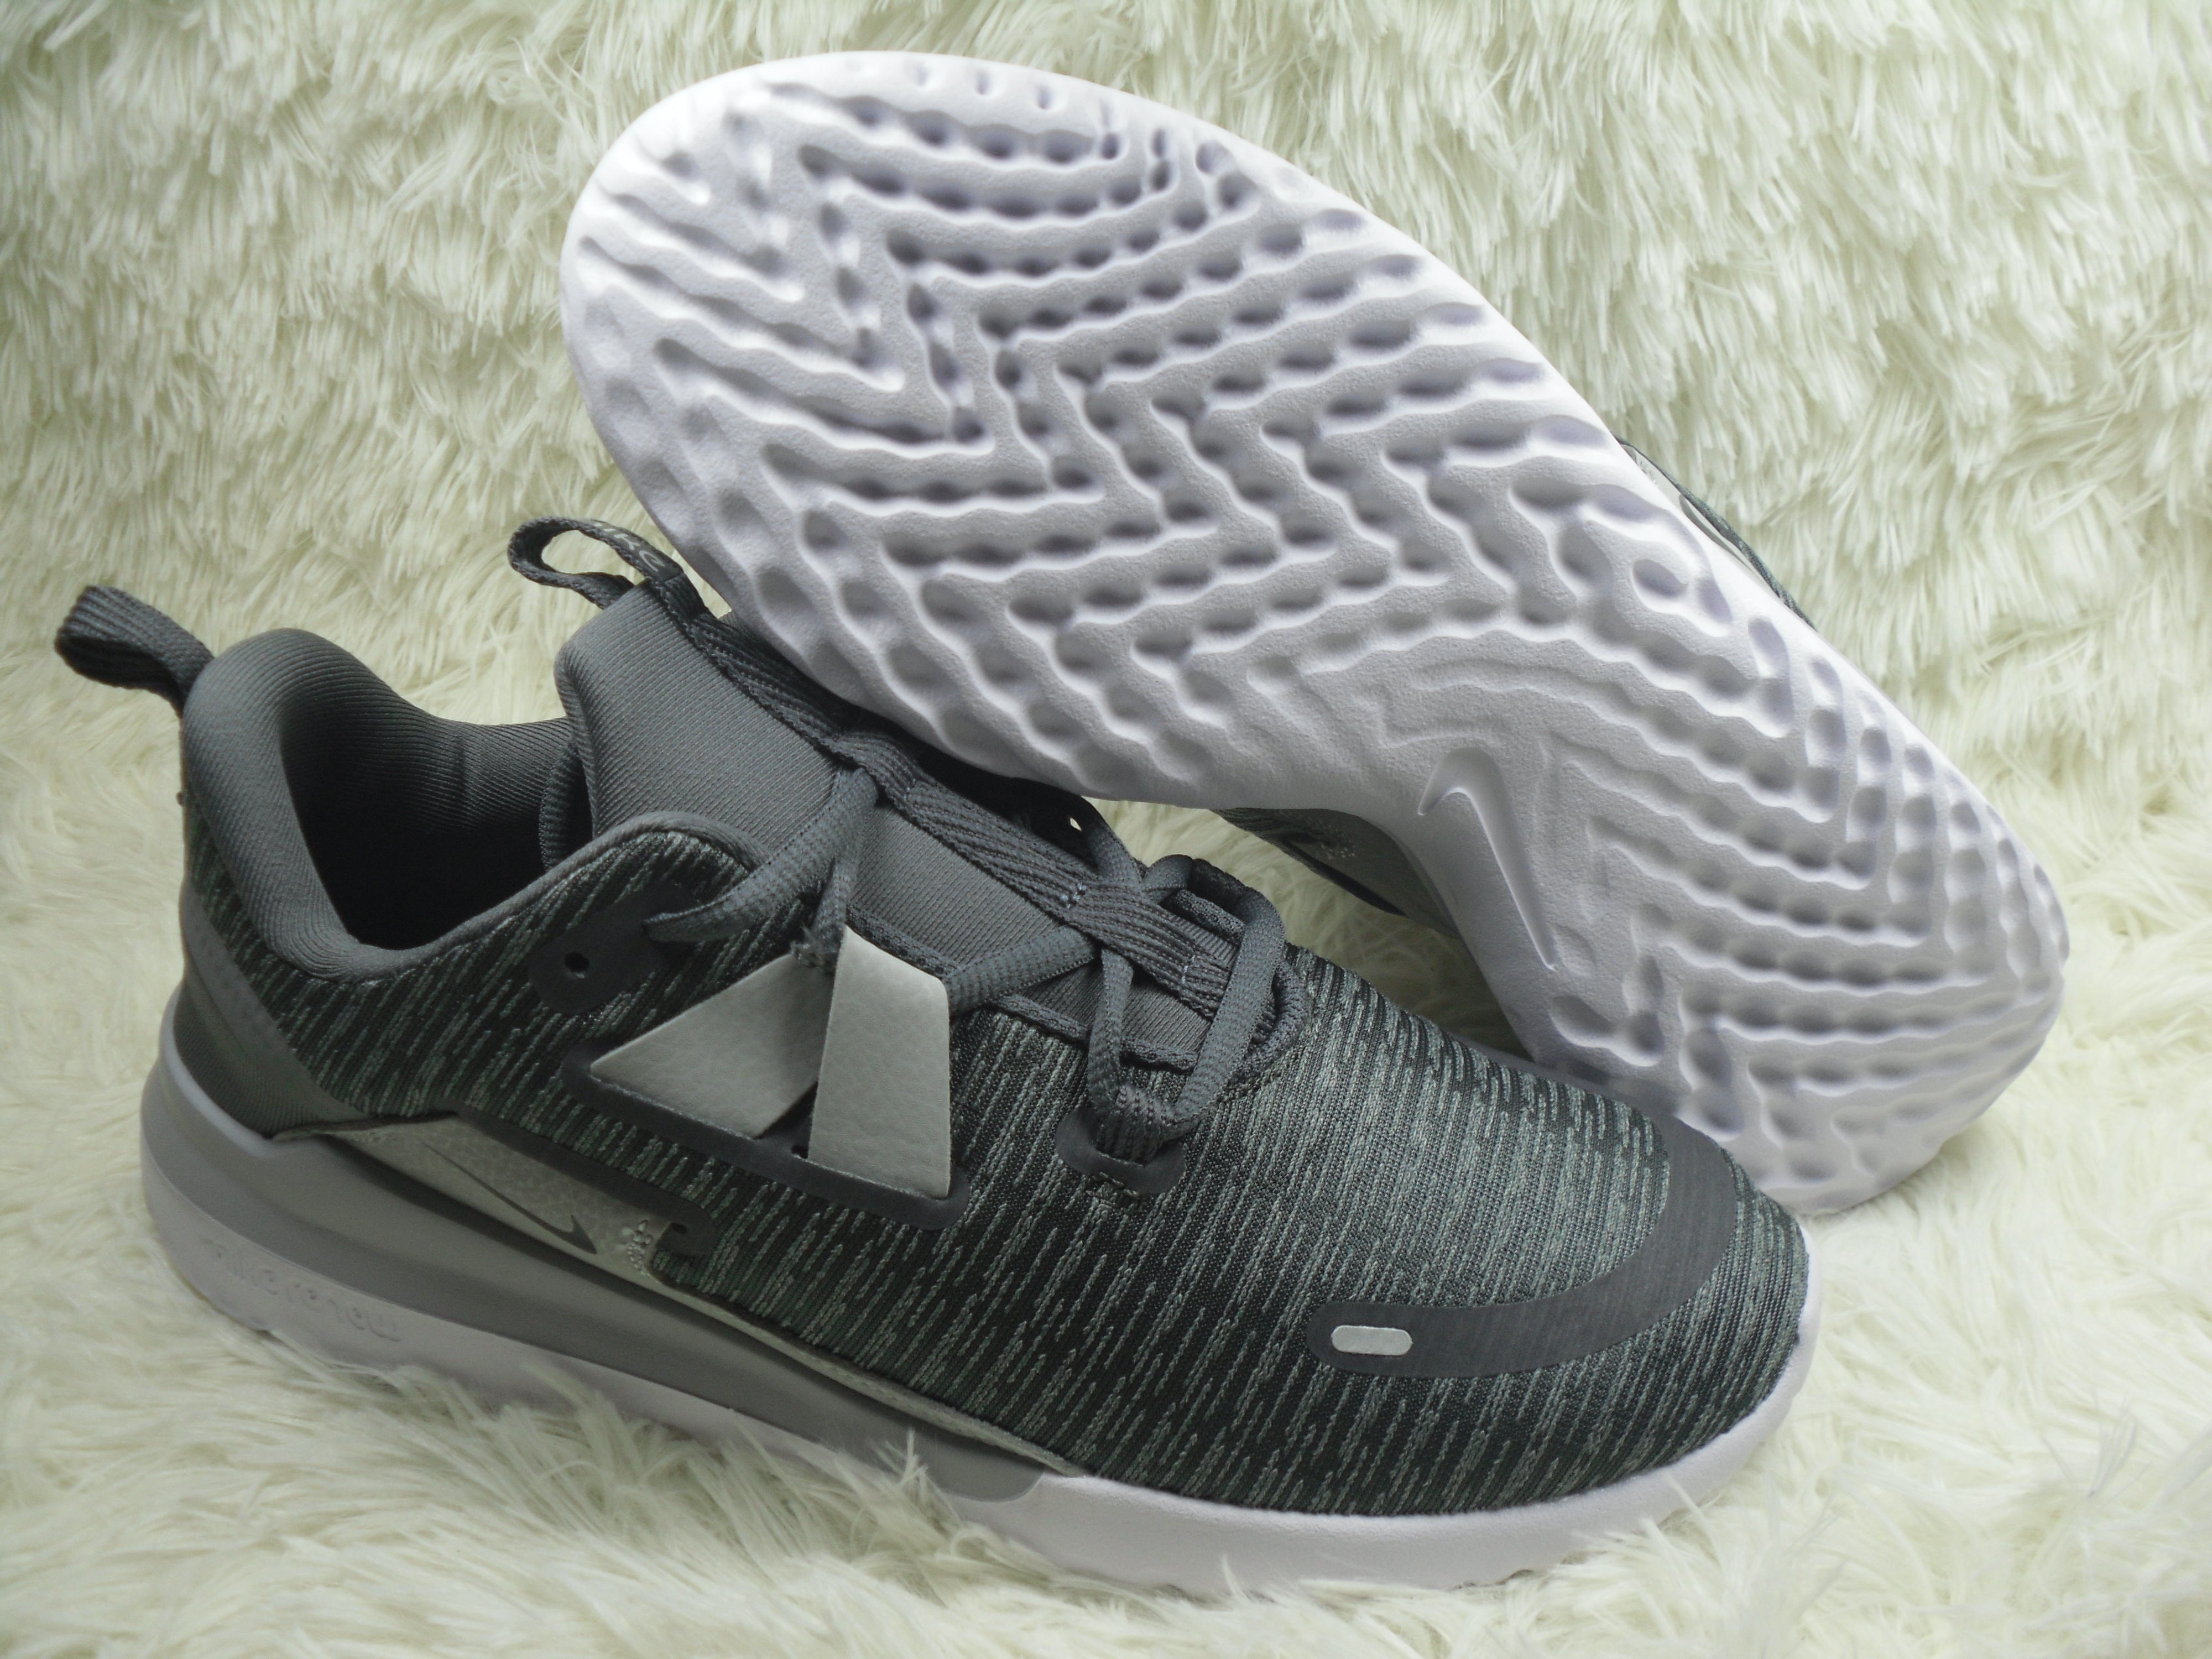 898e7829b31 Nike Renew Arena Flyknit   Real Nike Running Shoes